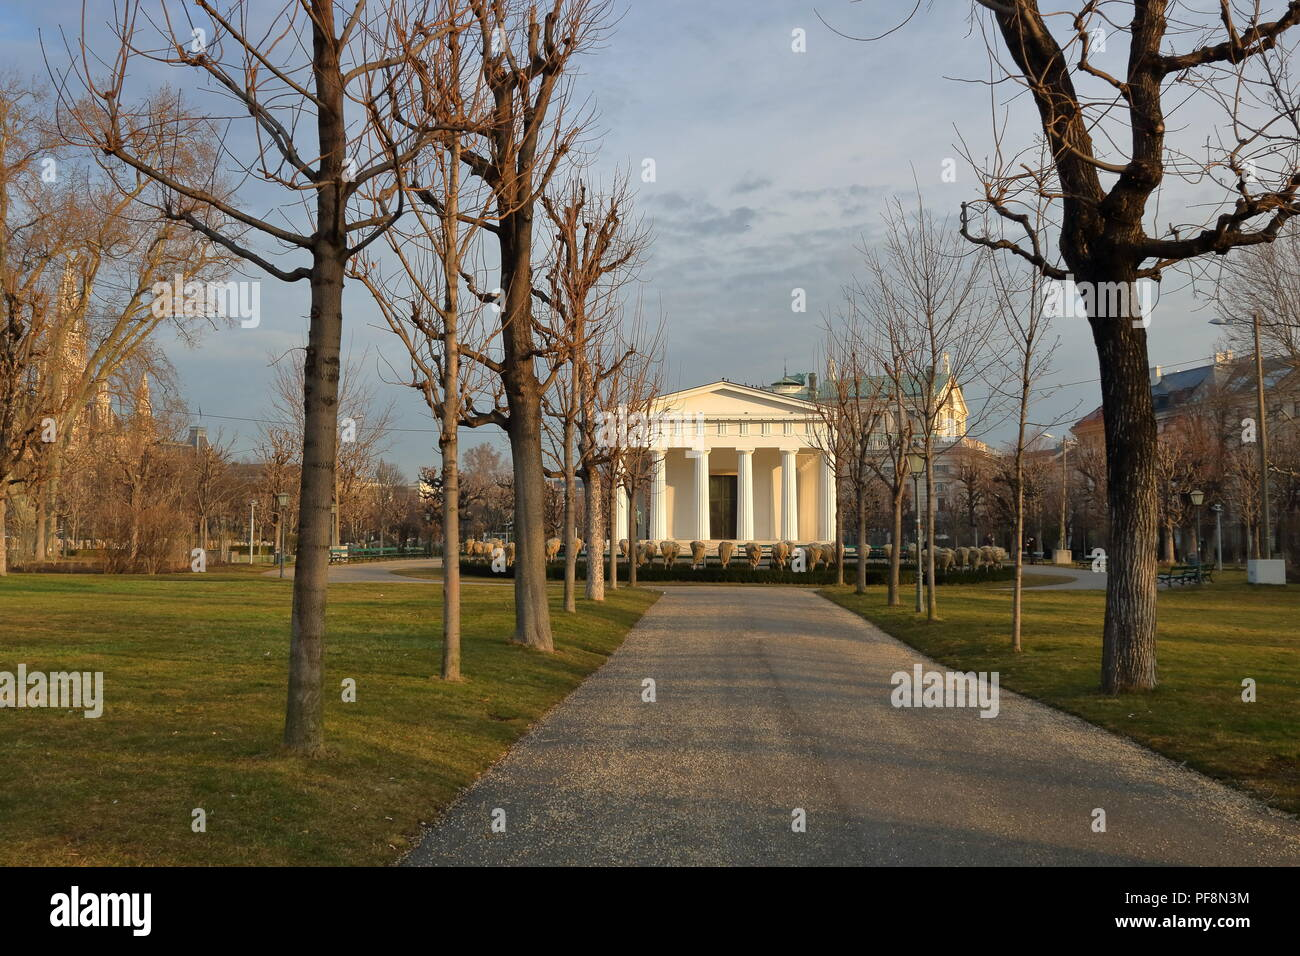 Cityscape of Vienna, Austria, public park, historical beautiful building, autumn, alley, without people. - Stock Image